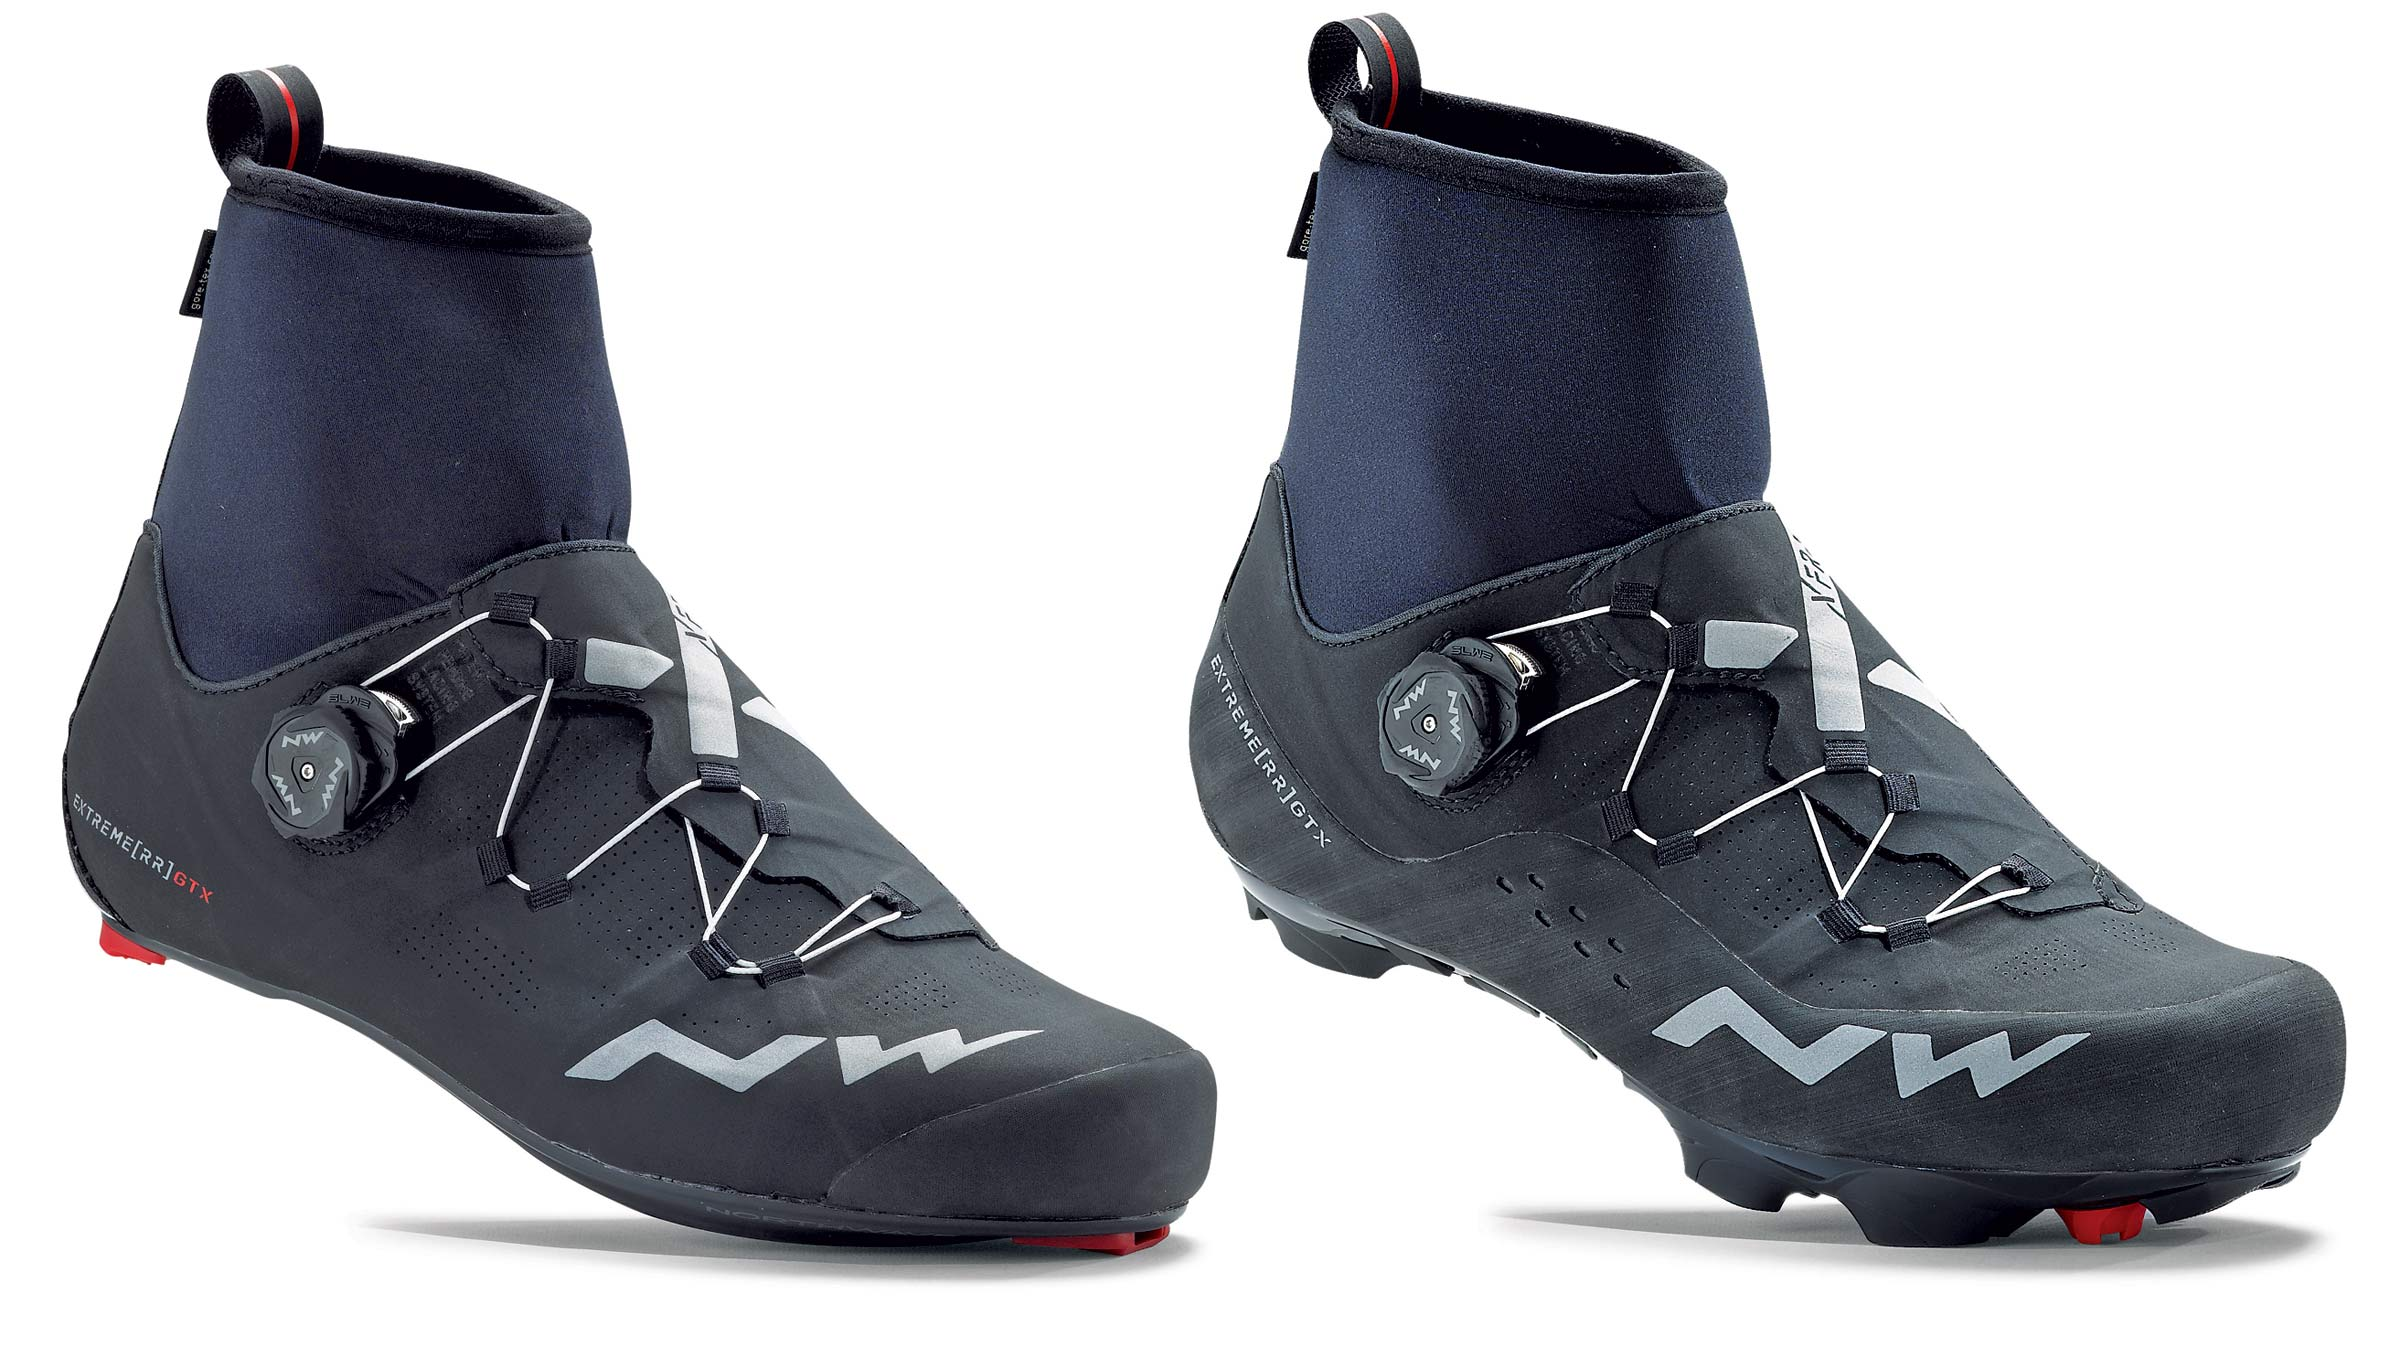 Northwave Extreme RR & XCM GTX GoreTex waterproof winter shoes winter cycling shoes full range of ankle motion ClimaFlex Collar road and mountain bike